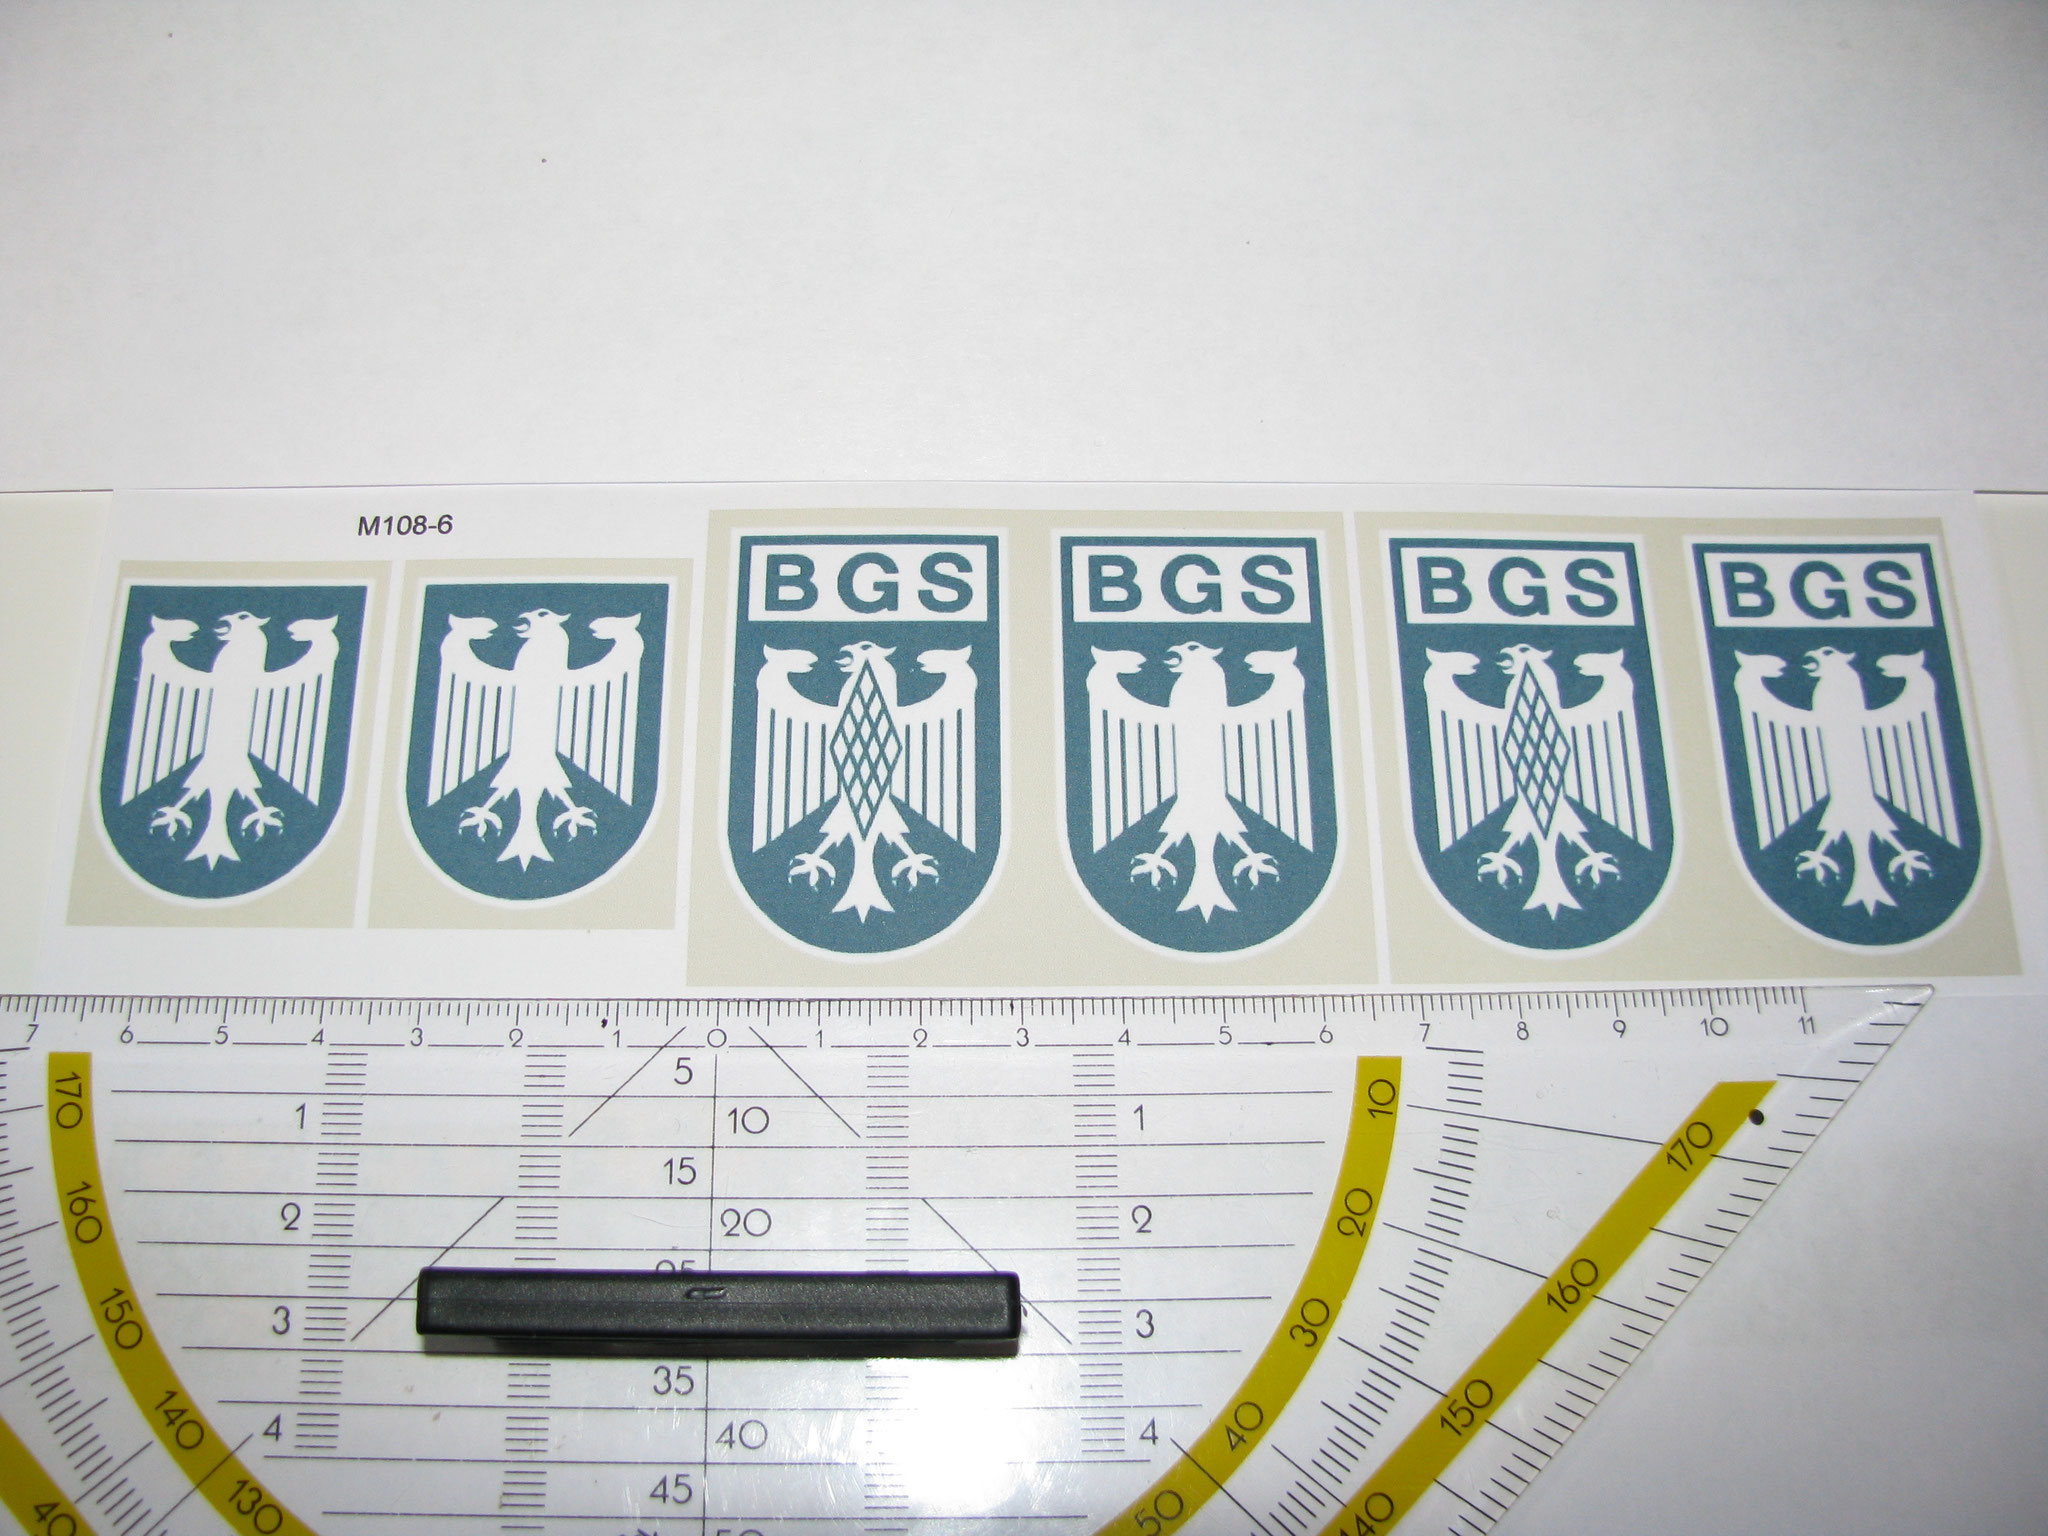 M108-6: BGS. 8 Decals. Max 35x53mm